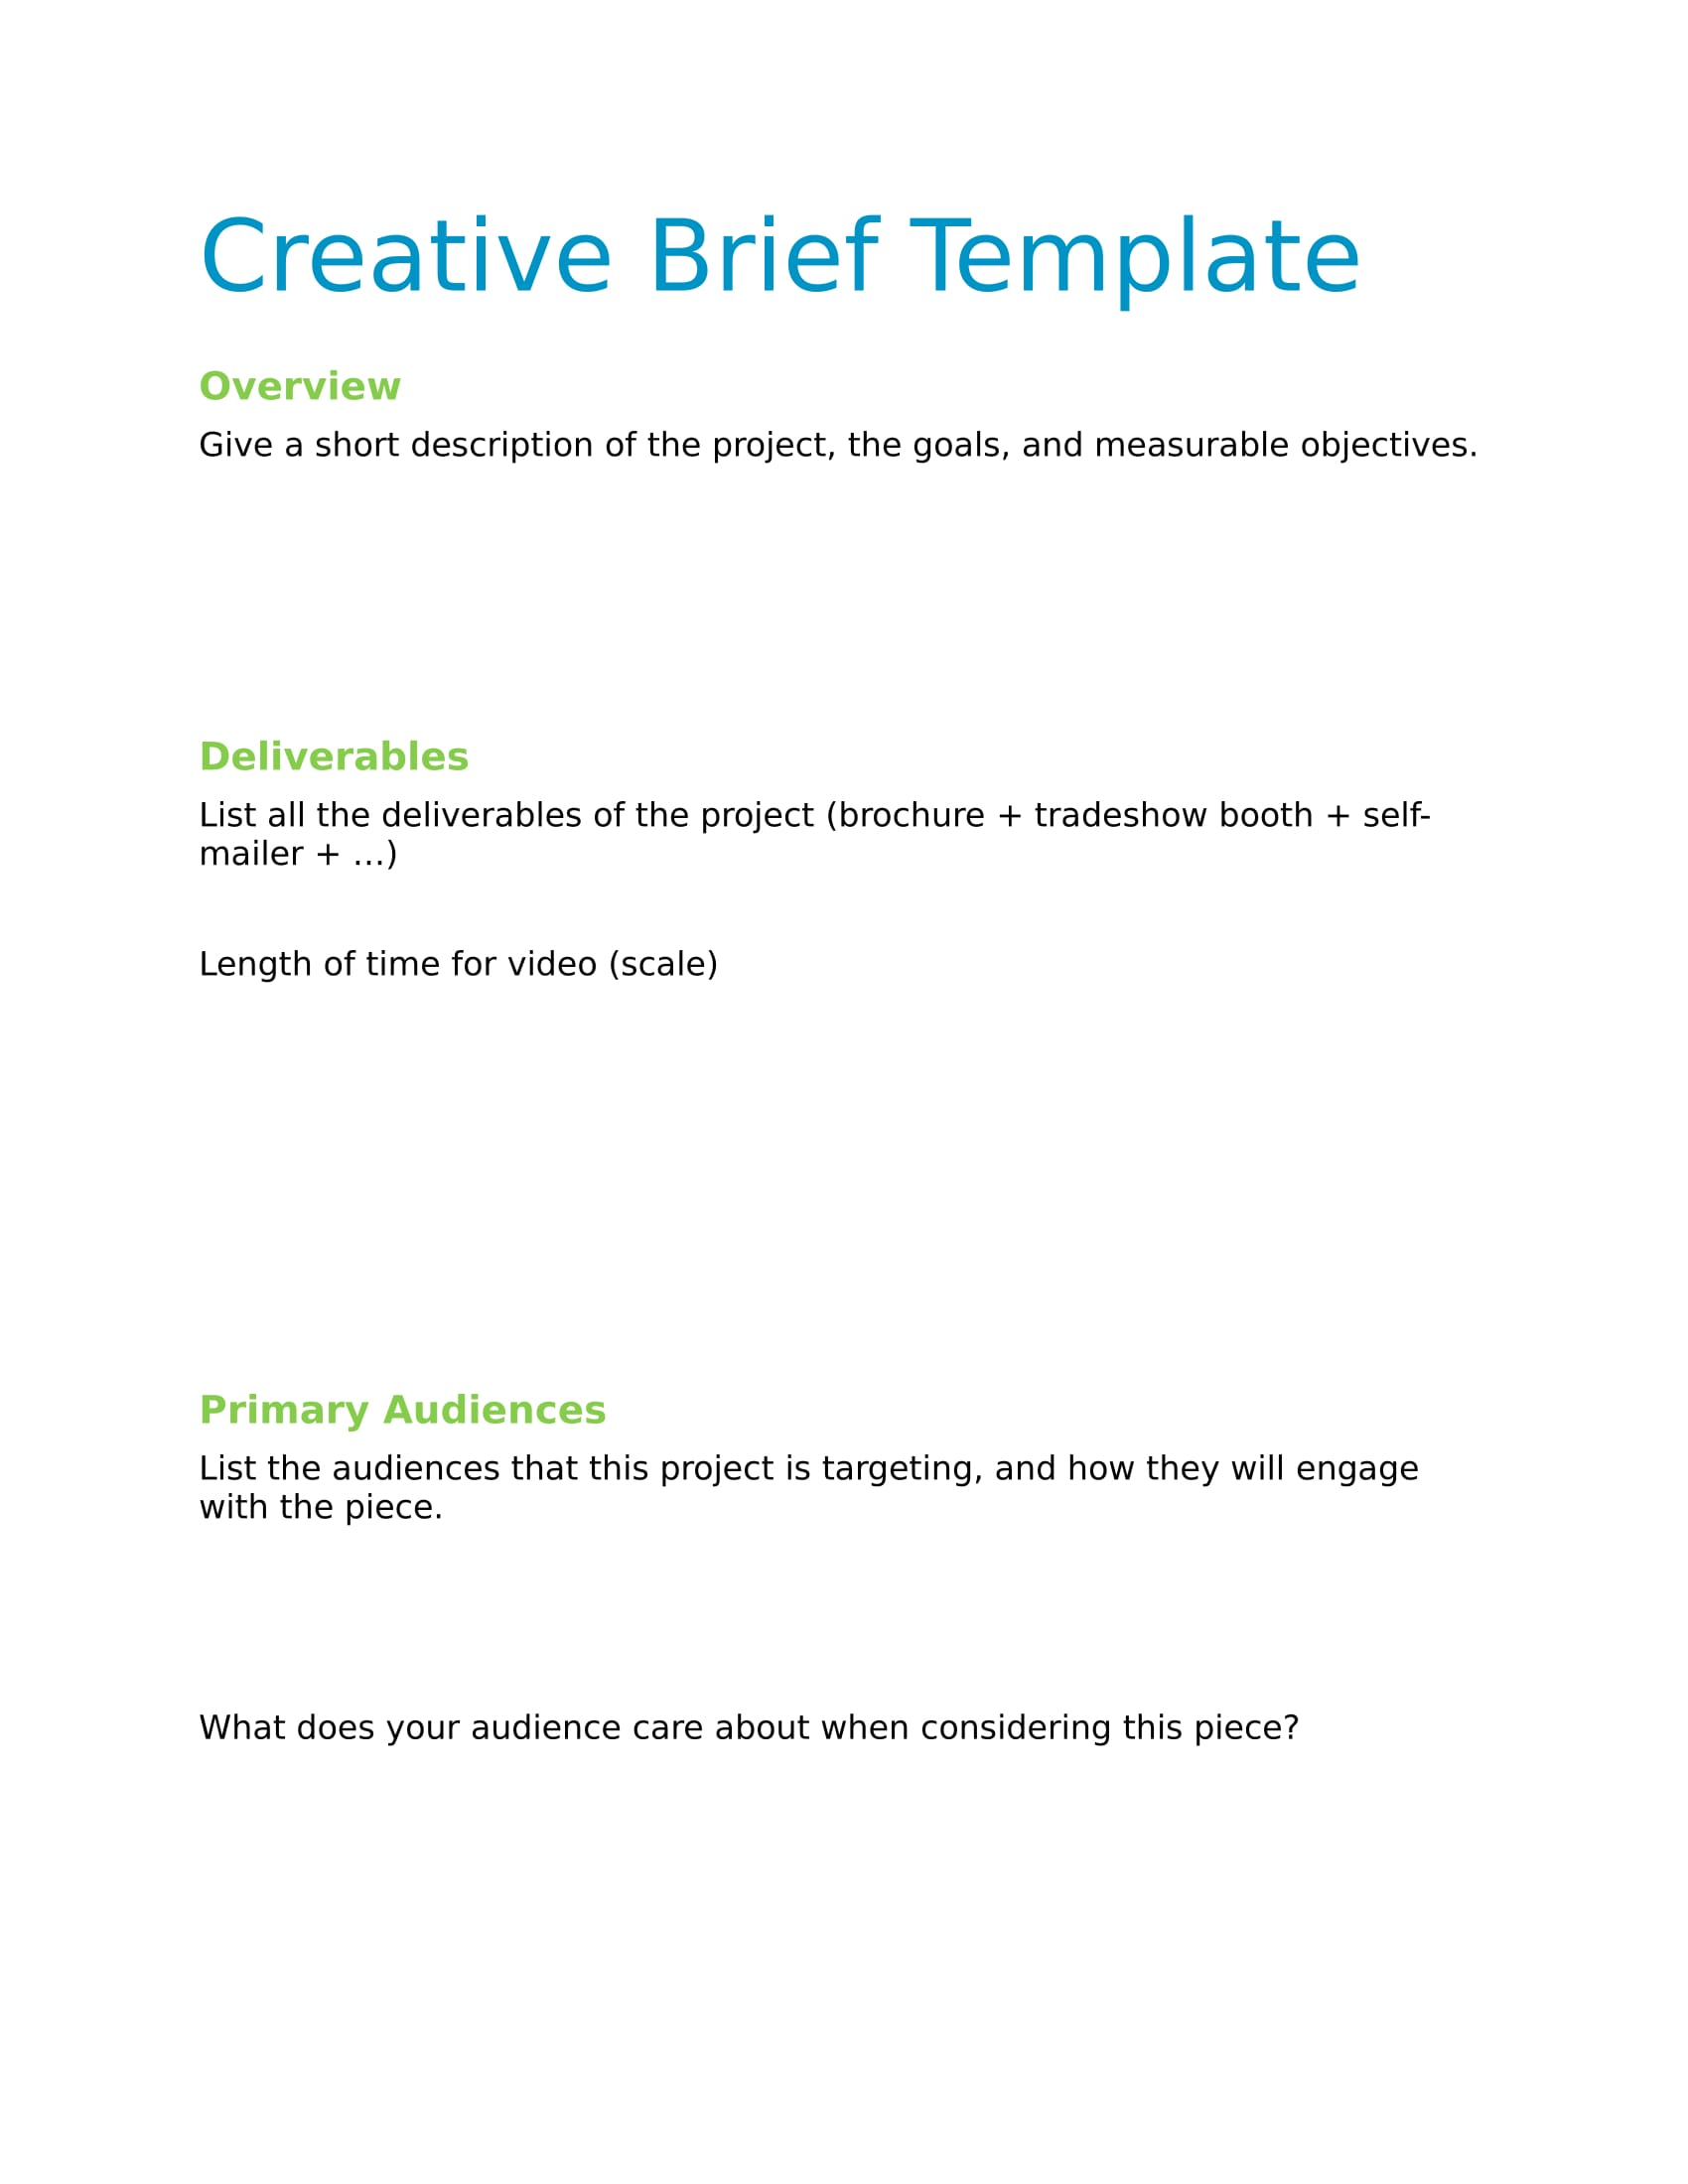 creative brief template example4